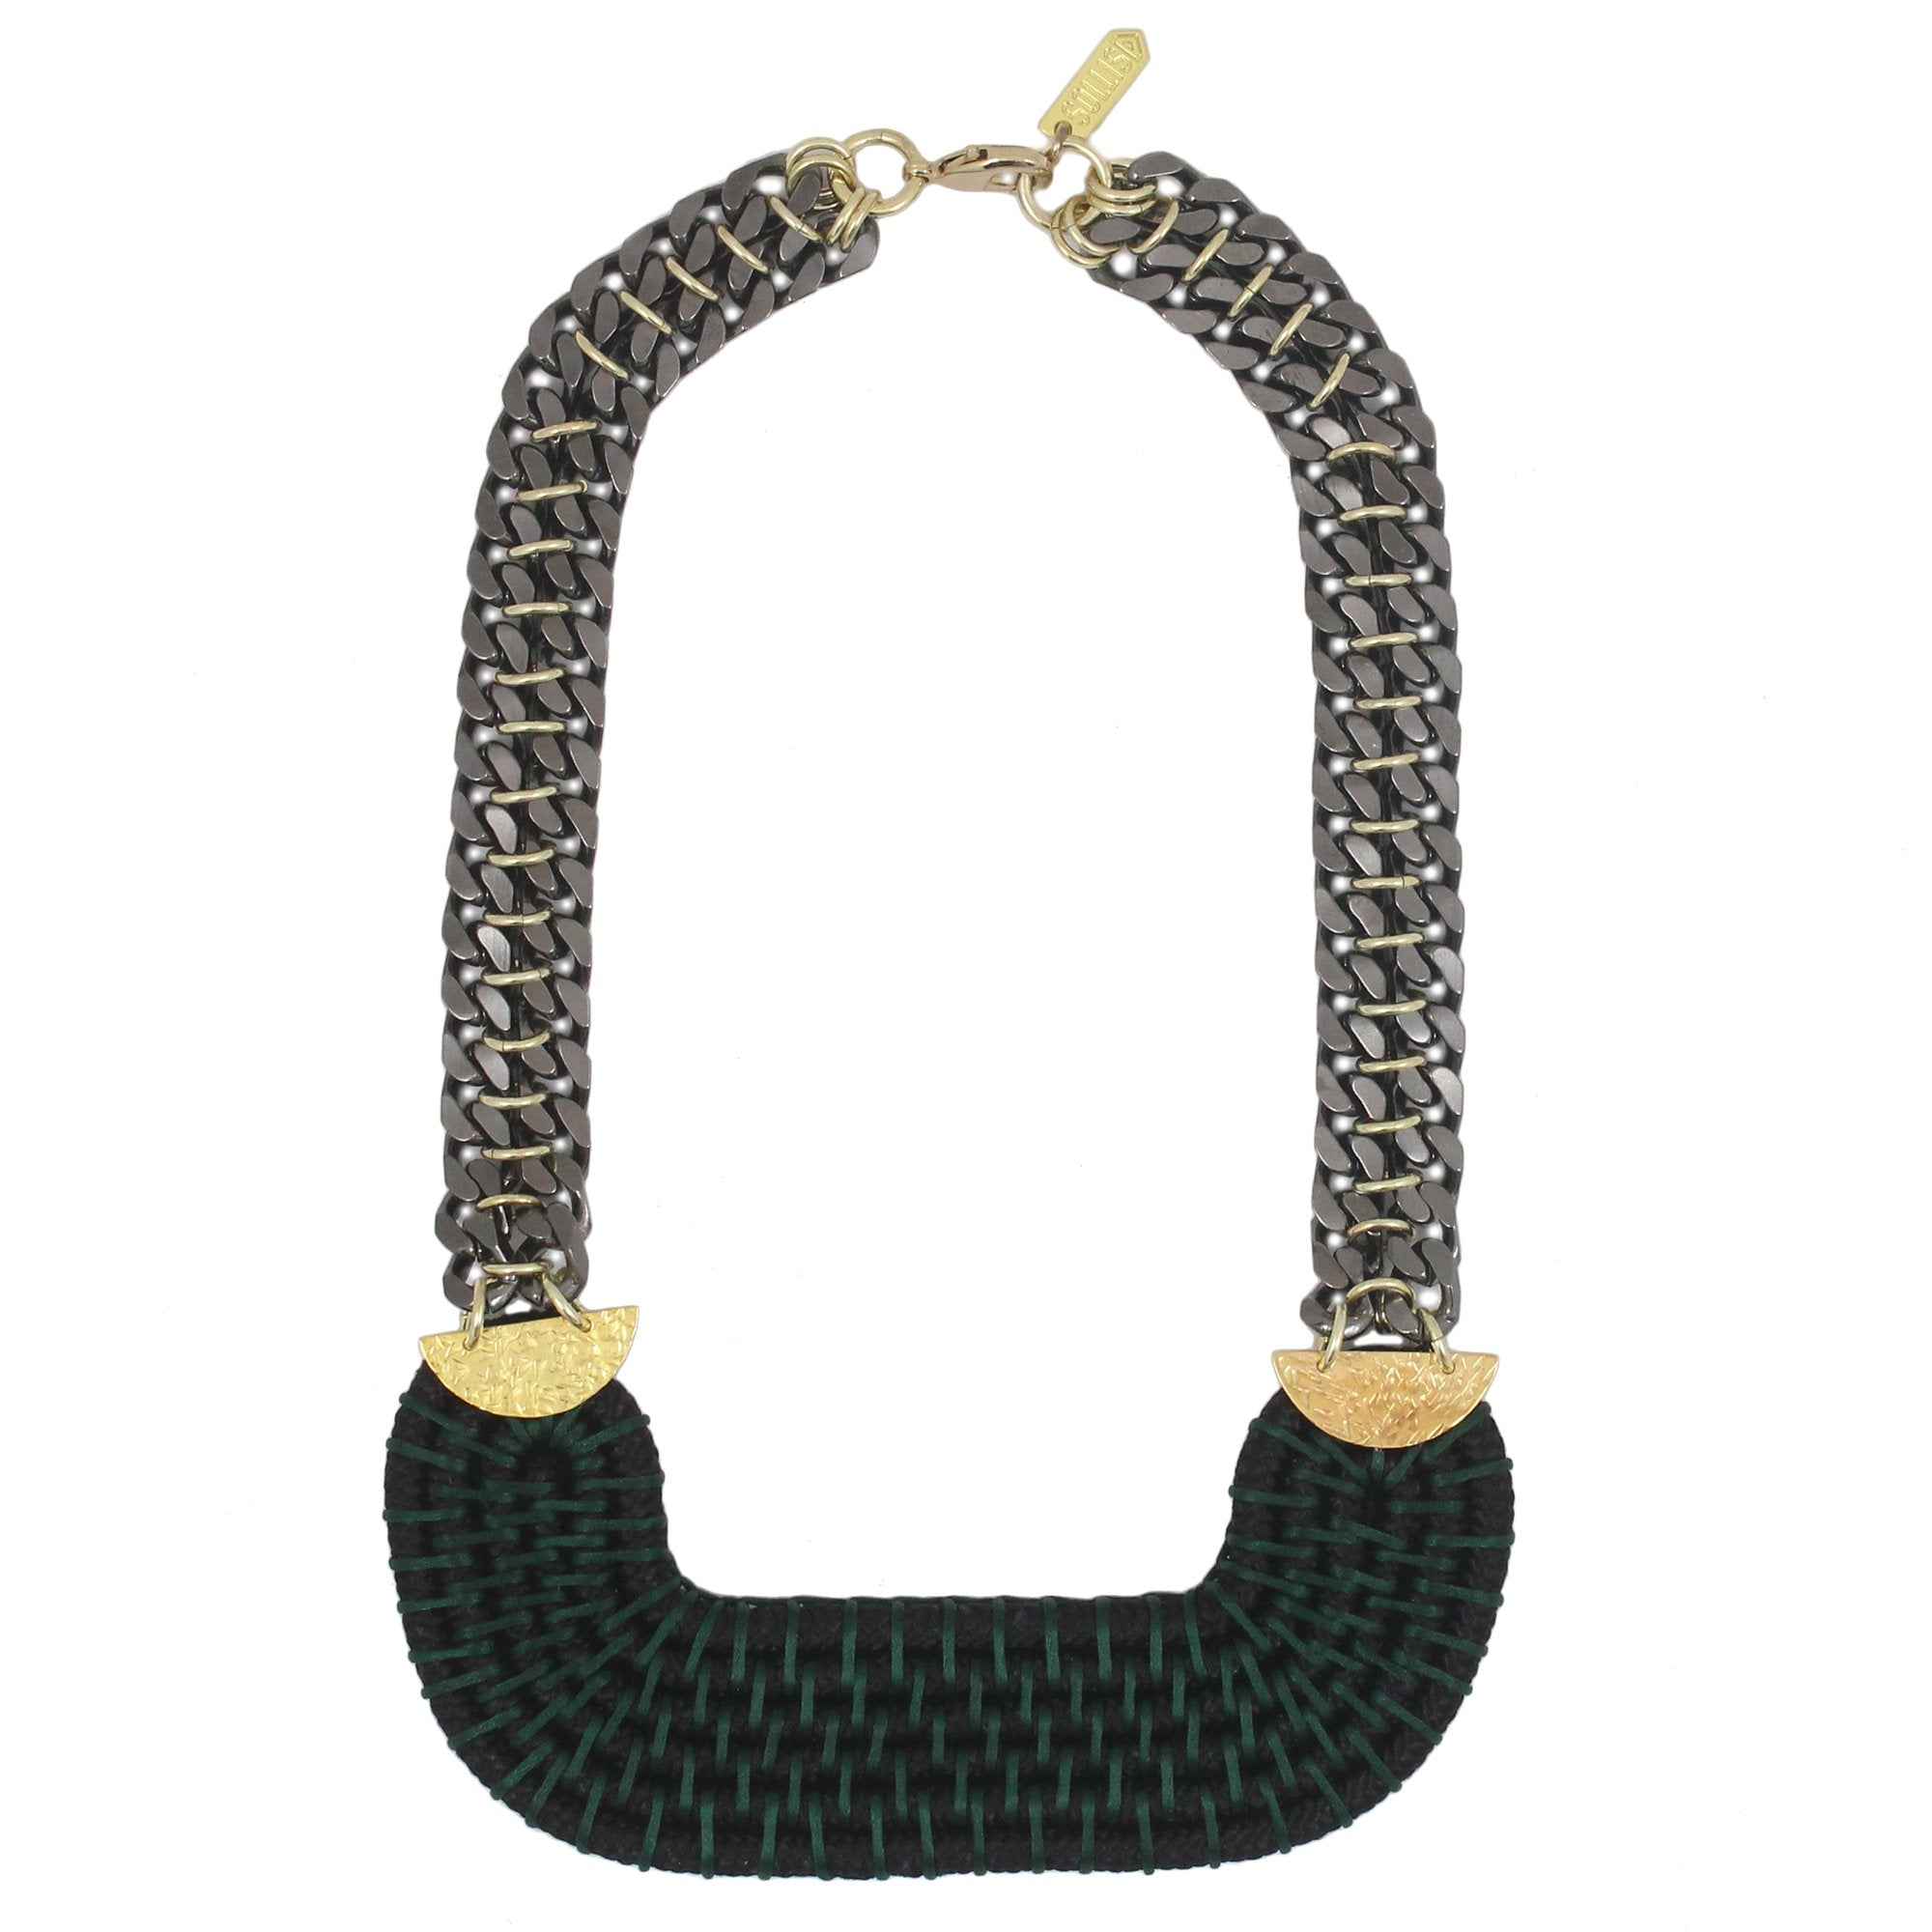 NANDI necklace - 70% OFF